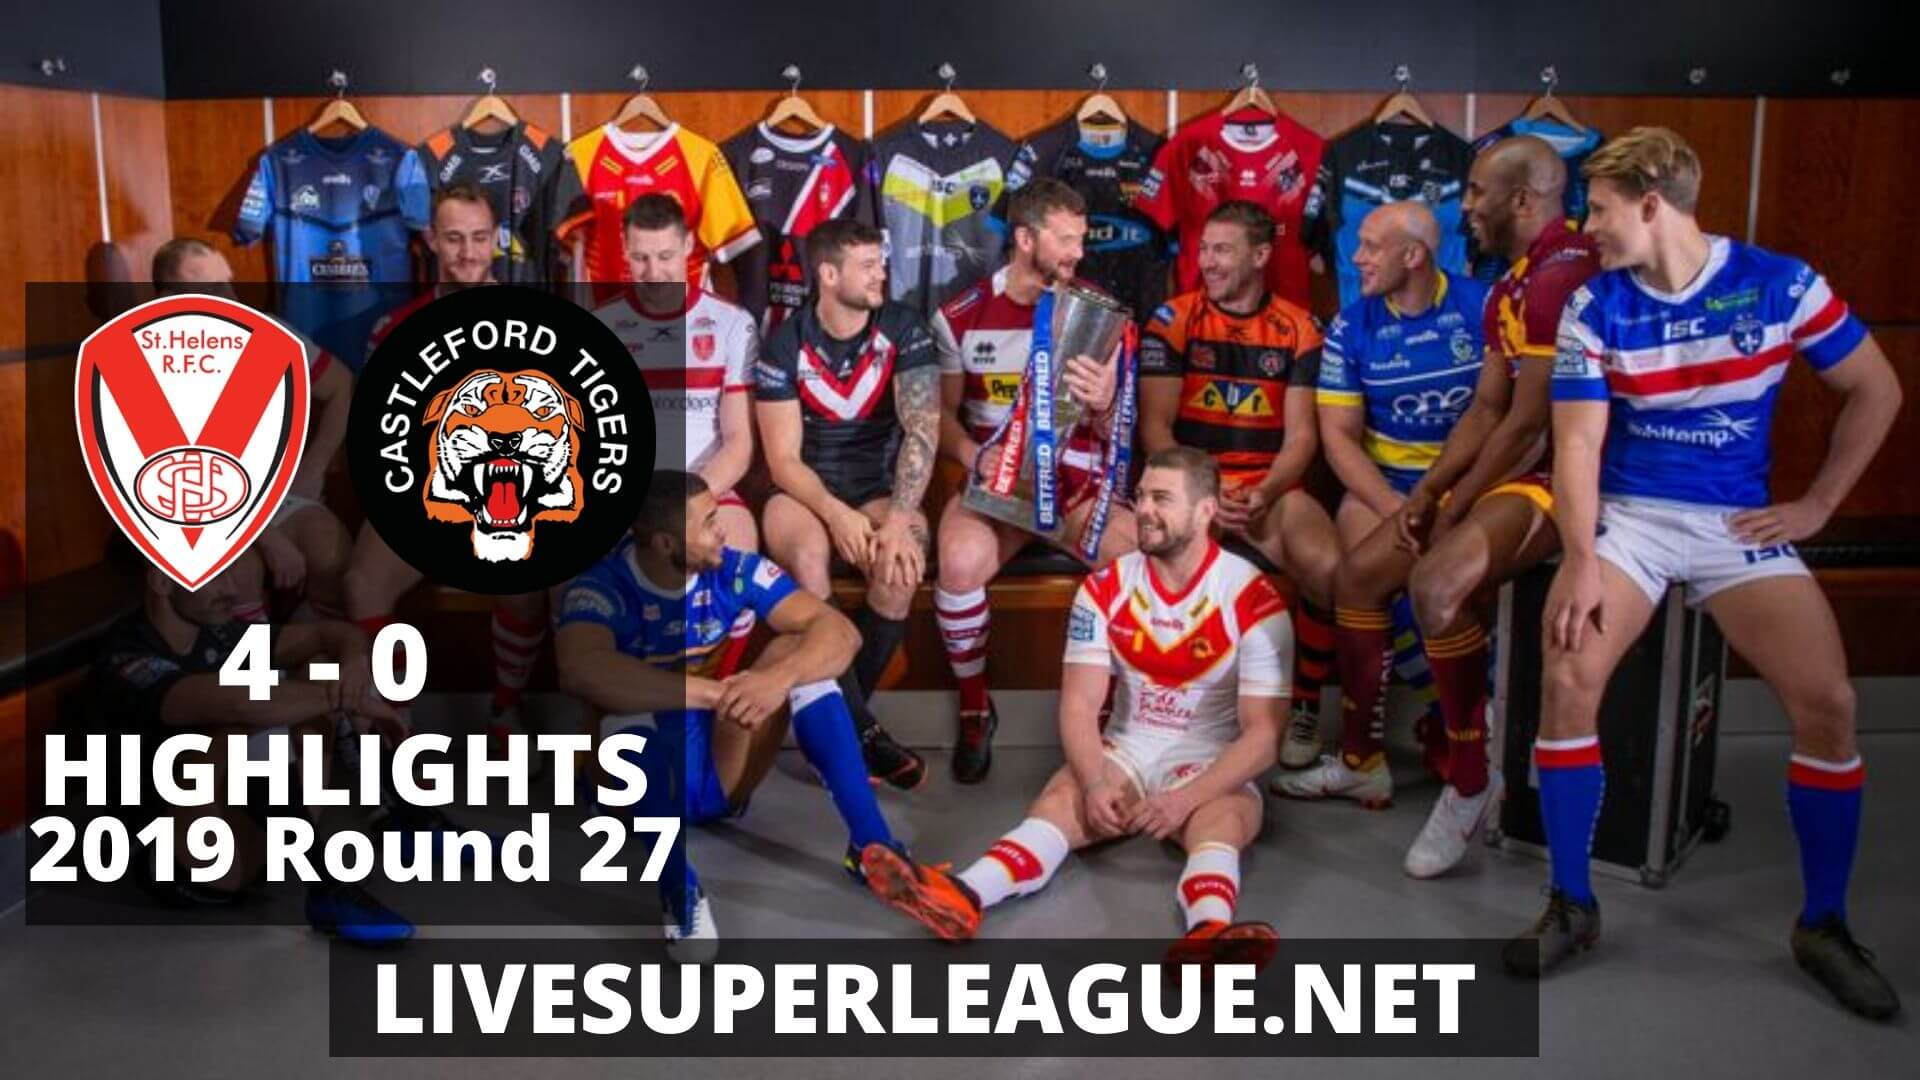 St Helens Vs Castleford Tigers Highlights 2019 Round 27